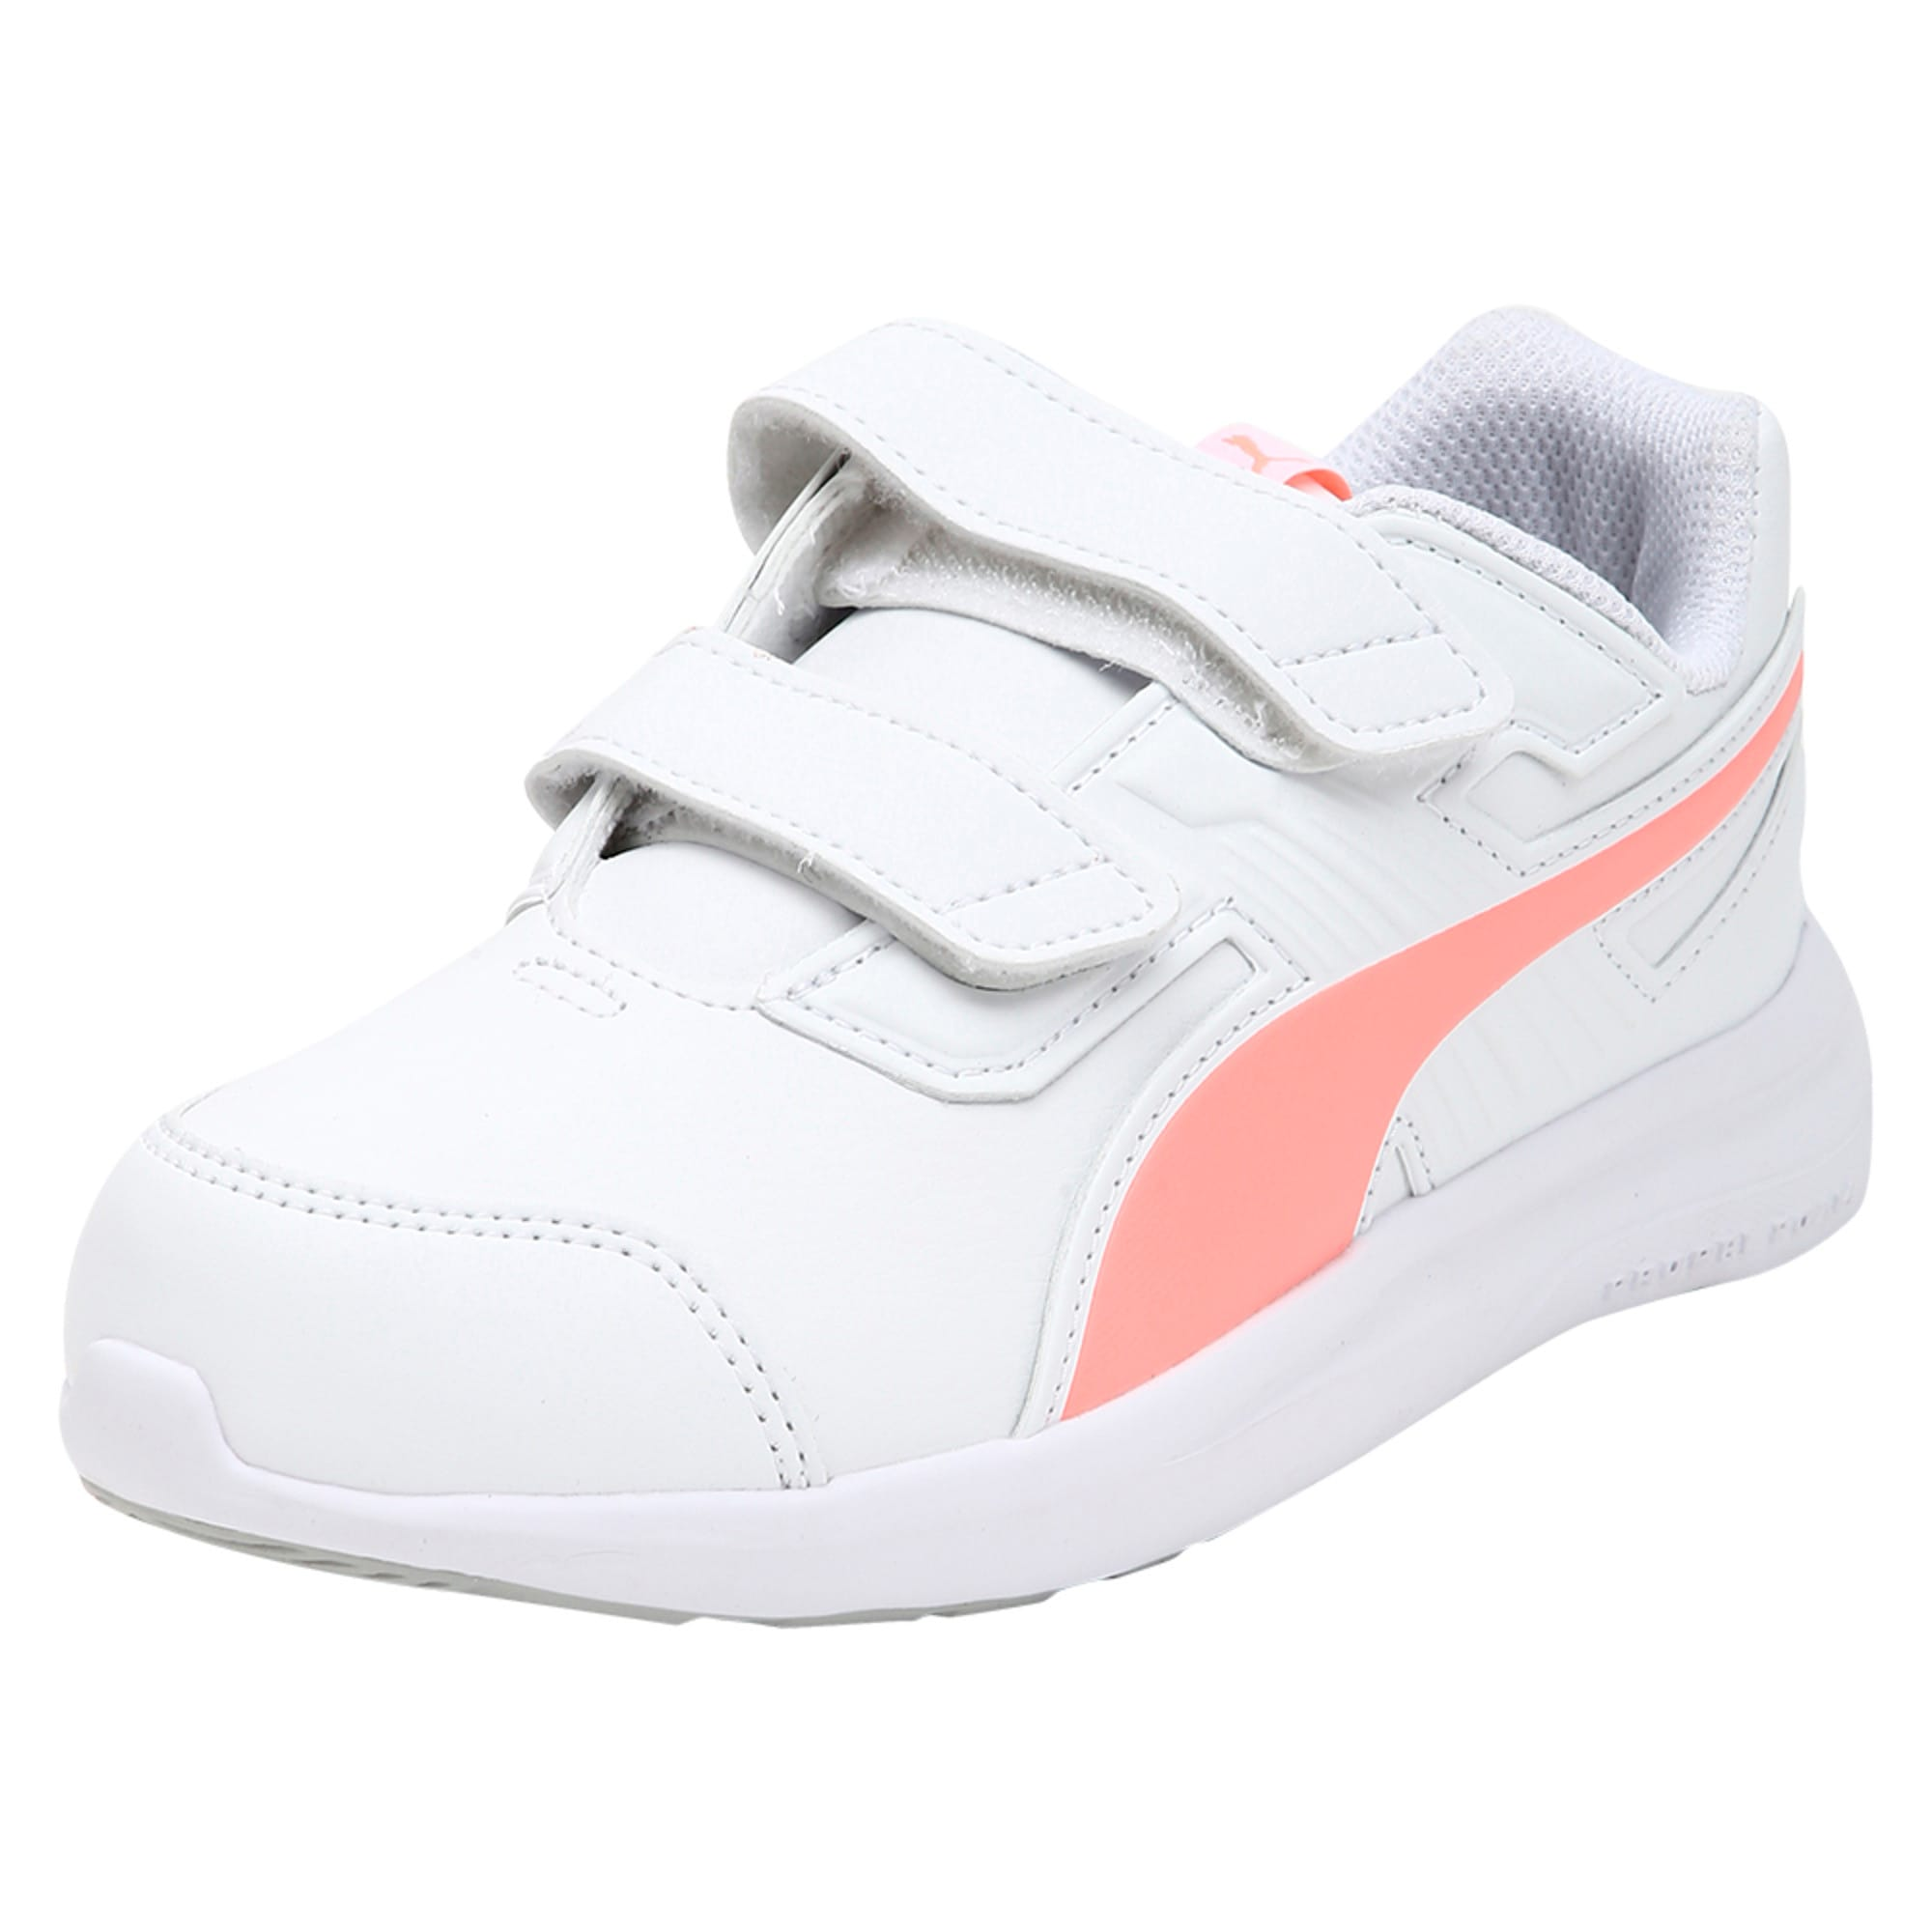 Thumbnail 1 of Escaper SL Baby Trainers, Puma W-Soft Fl P-Puma W, medium-IND